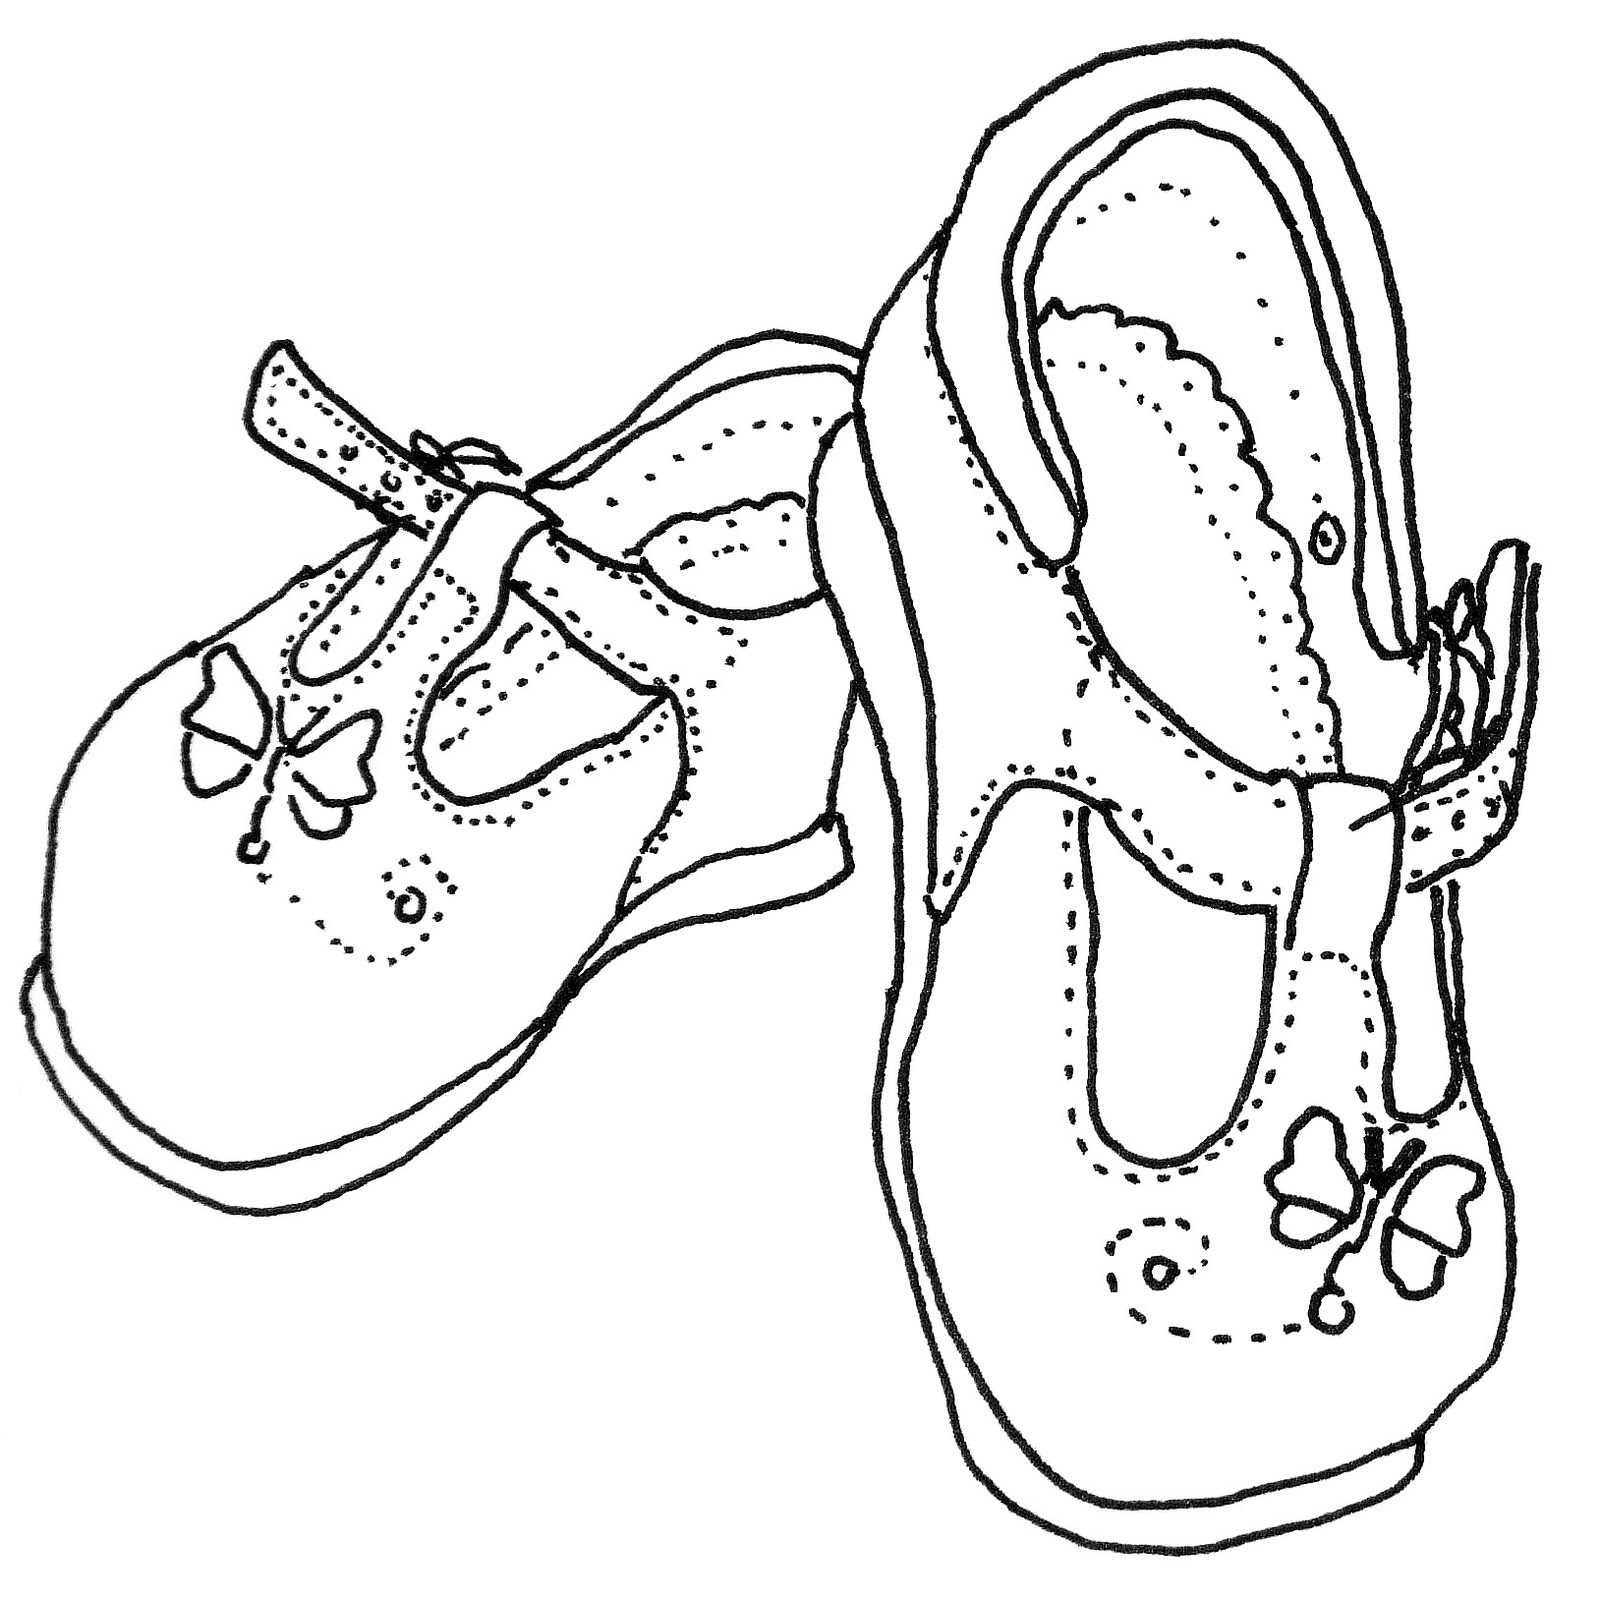 drawing of shoes image shoe drawing template at getdrawings free download shoes drawing image of